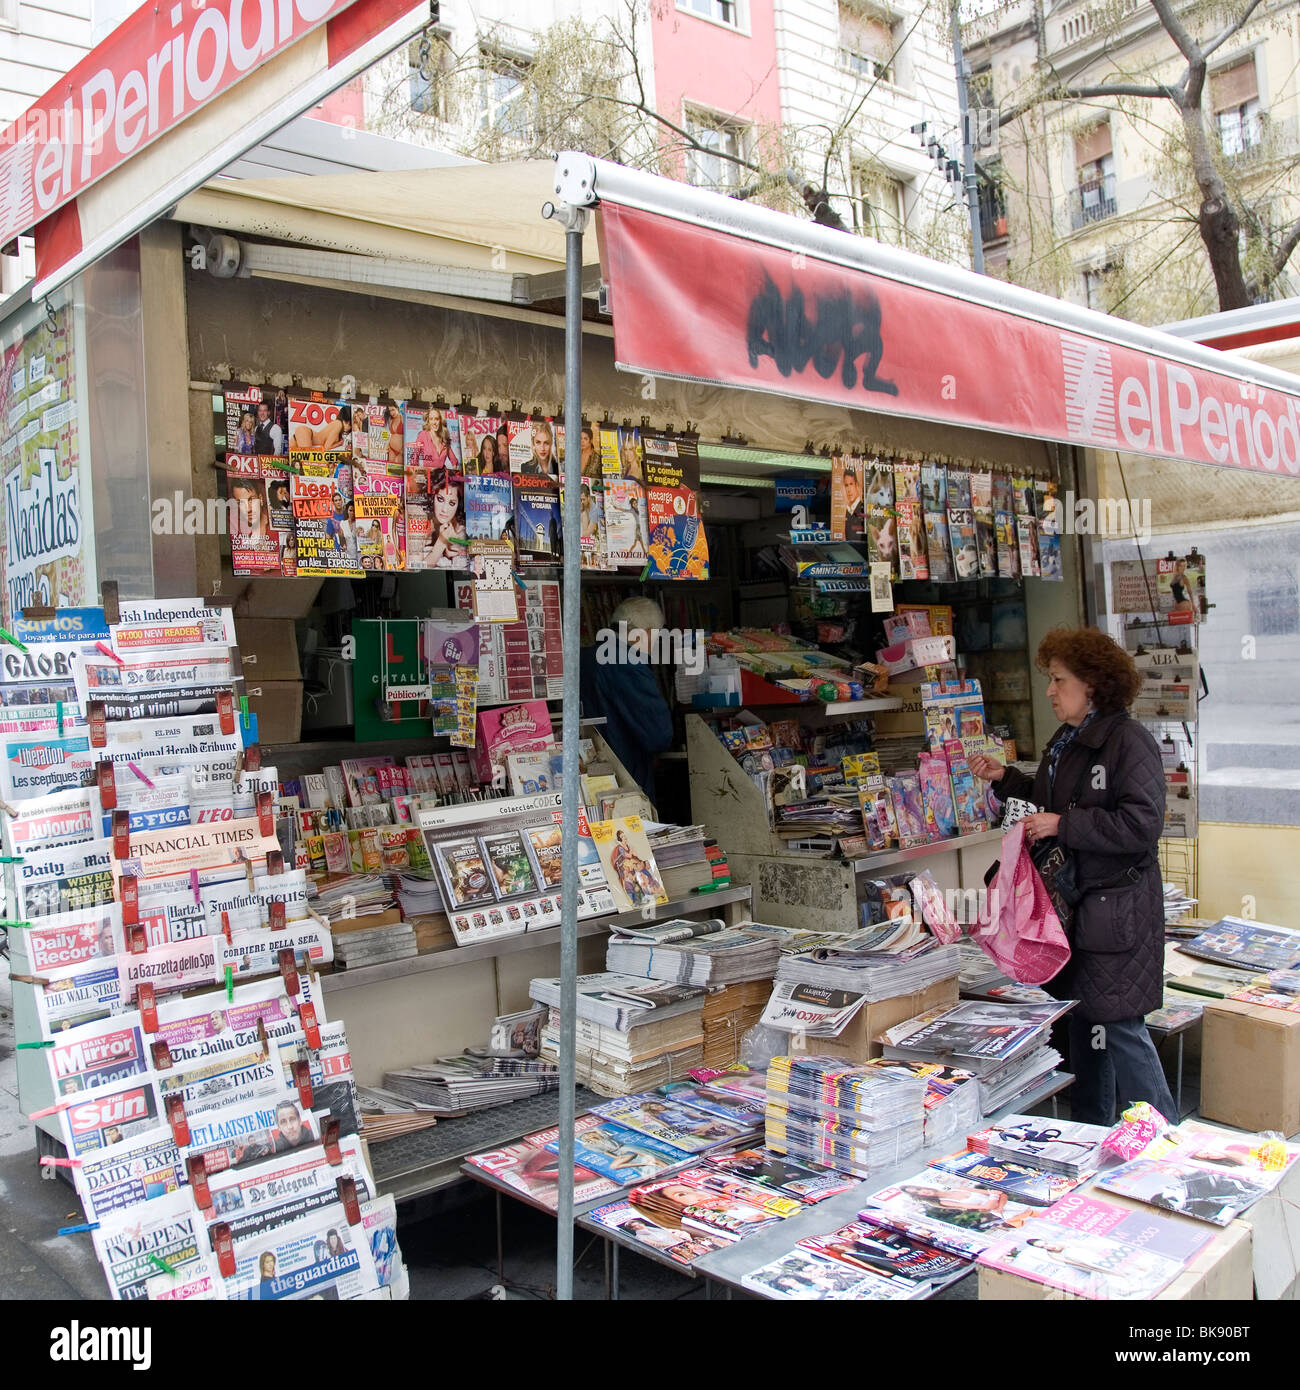 Periodical newsagent stall in Barcelona - Stock Image